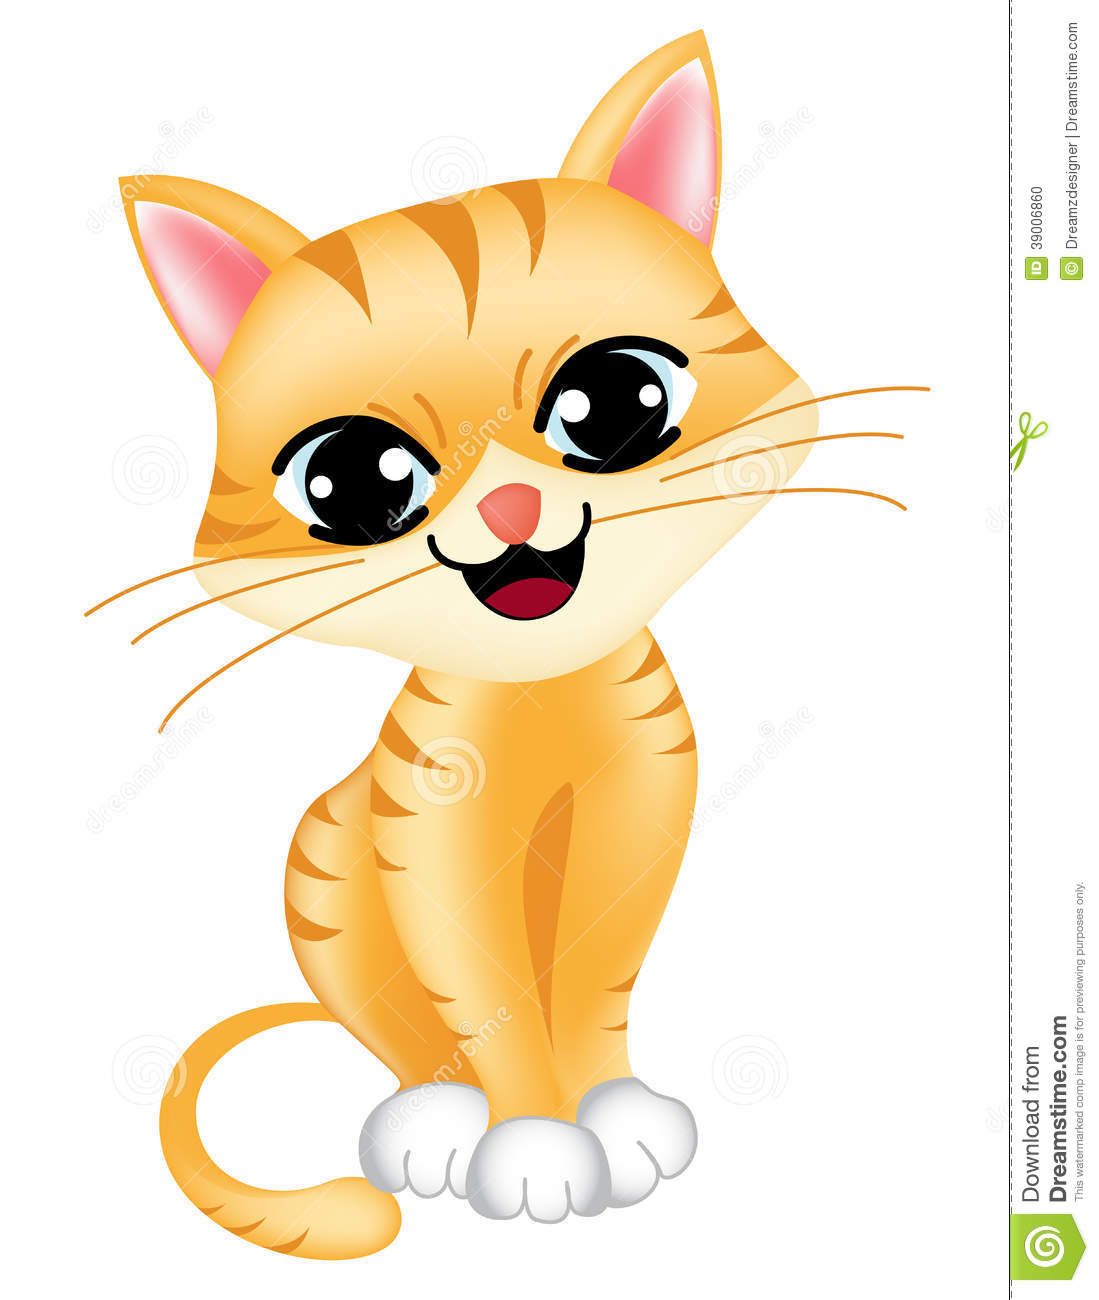 ... cat / kitten isolated on white background illustration / clipart